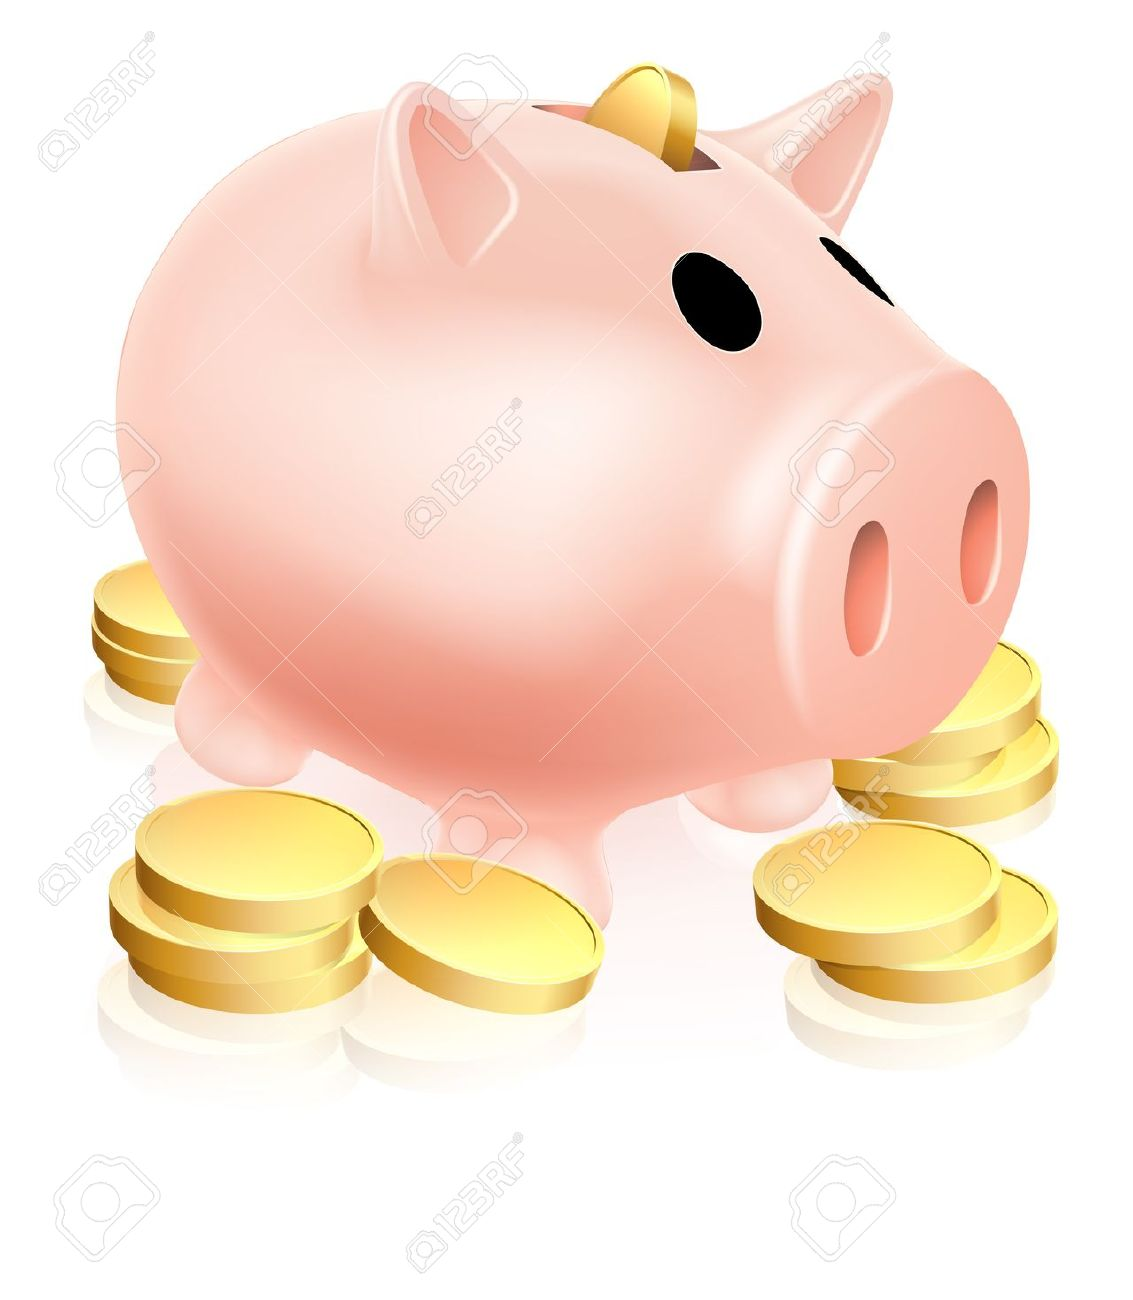 Piggy bank money clipart graphic freeuse download Illustration Of A Piggy Bank Money Box With Gold Coins Around ... graphic freeuse download